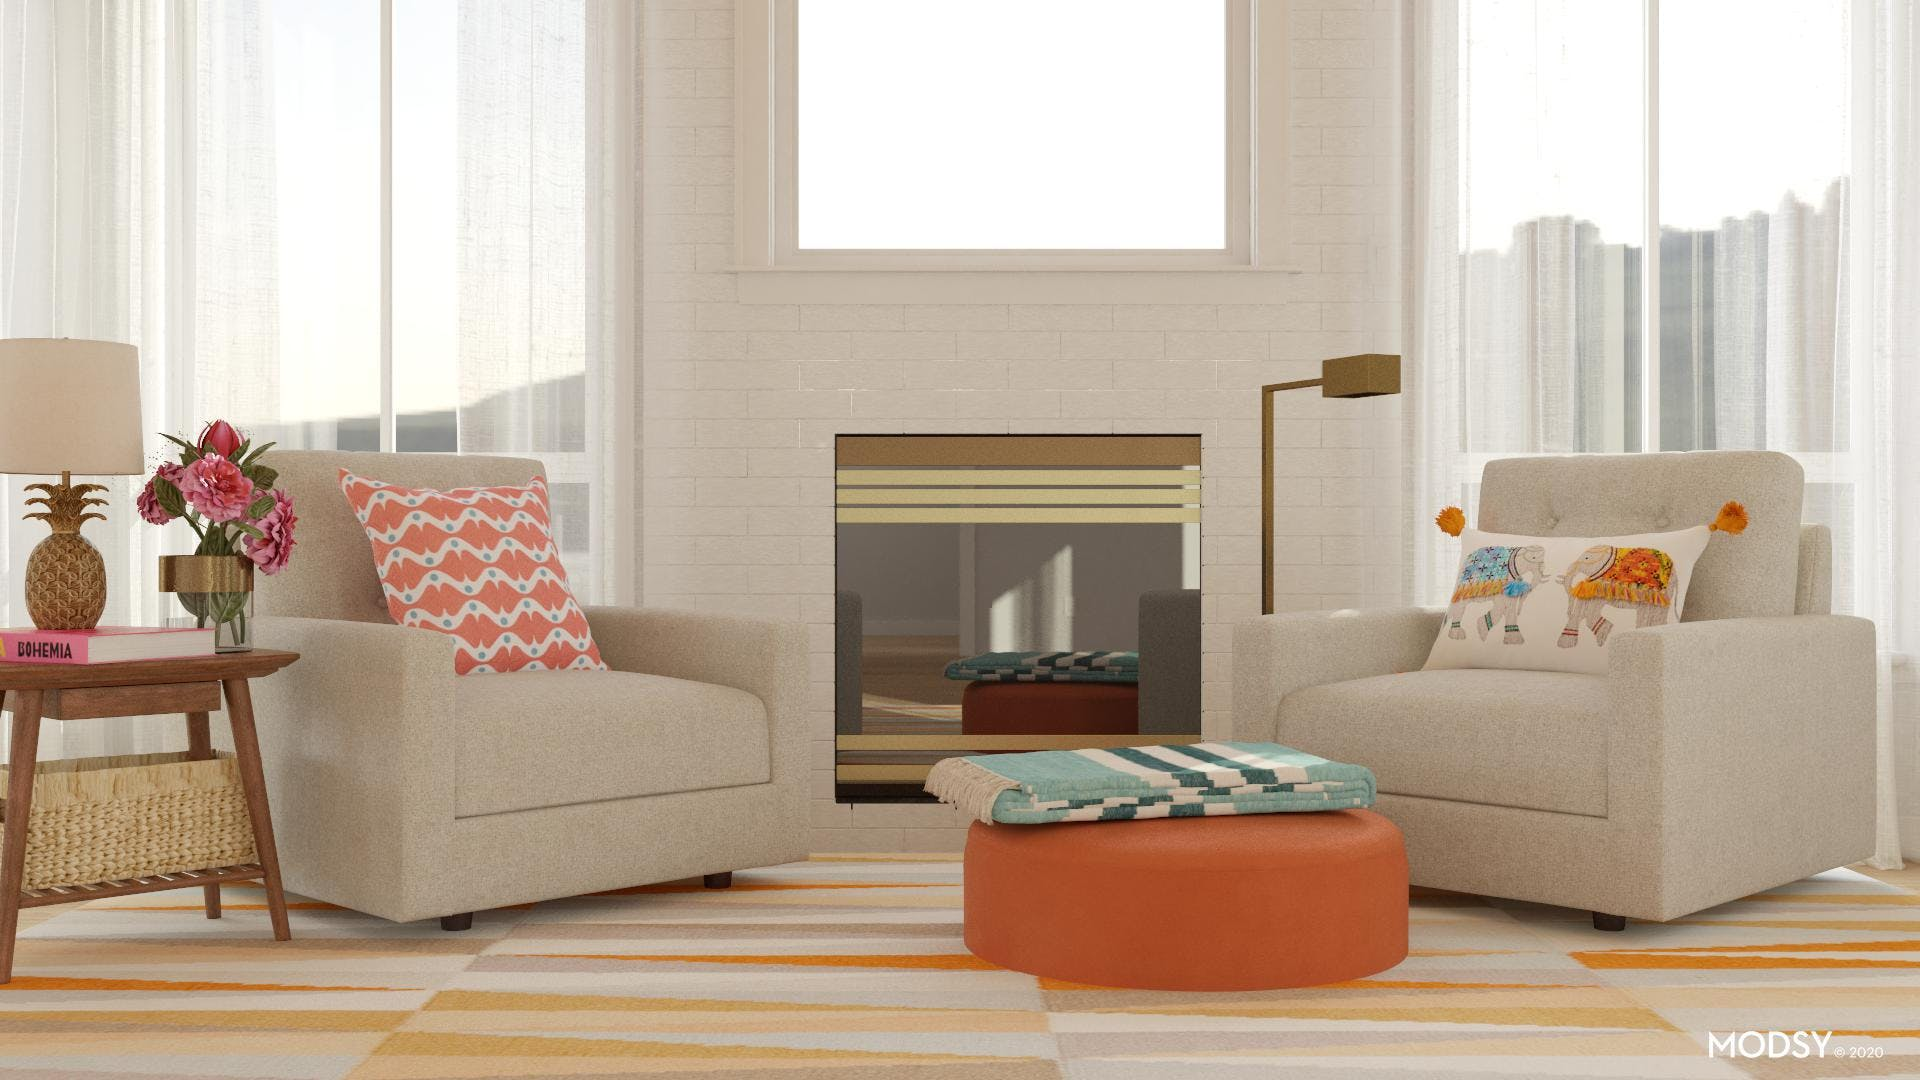 A Modern Multicolored Living Room